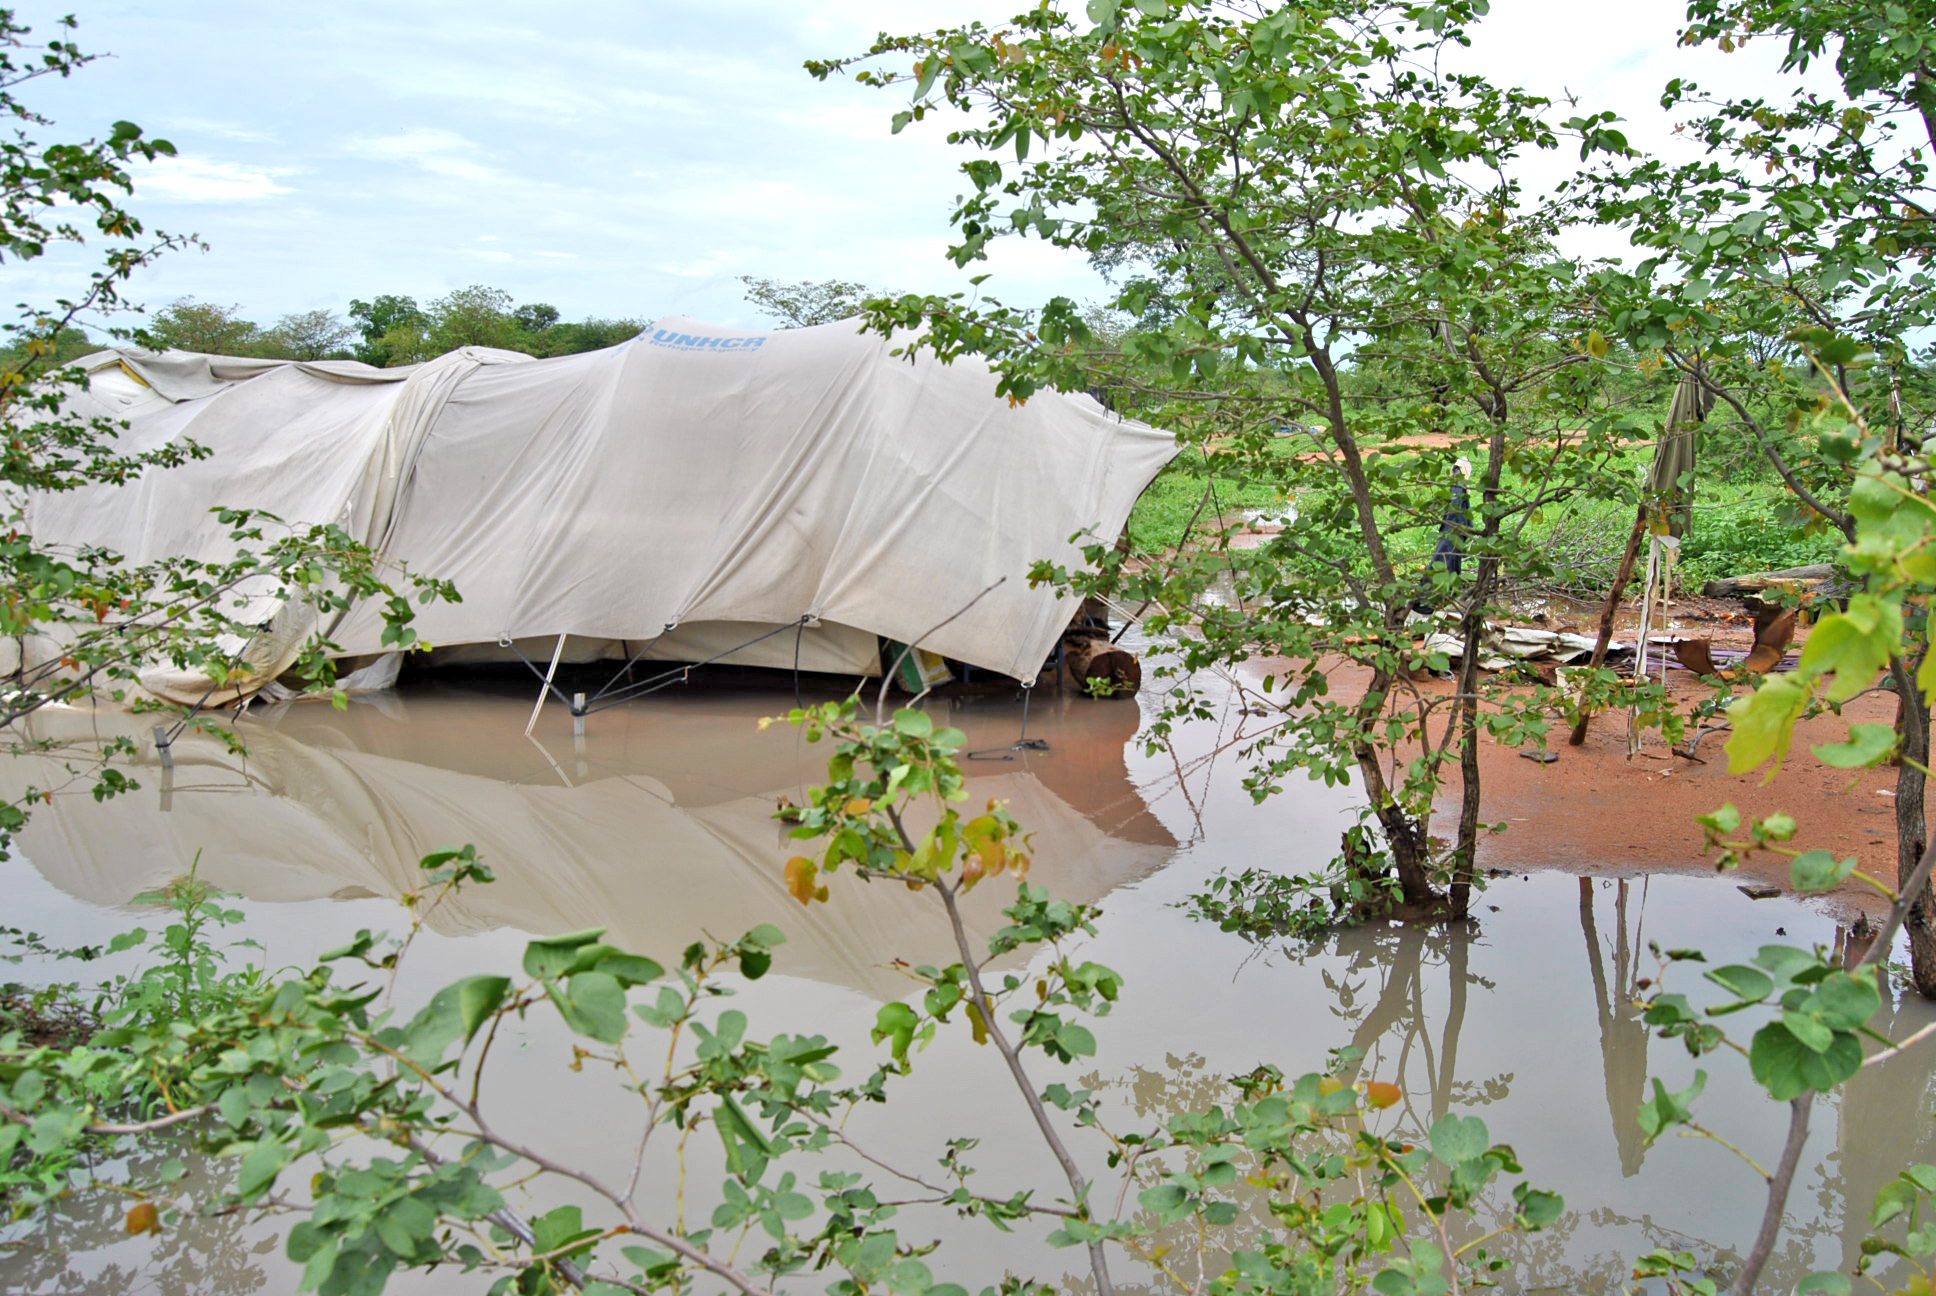 Refugee shelters inundated with flood waters at Dukwi Refugee Camp in Botswana